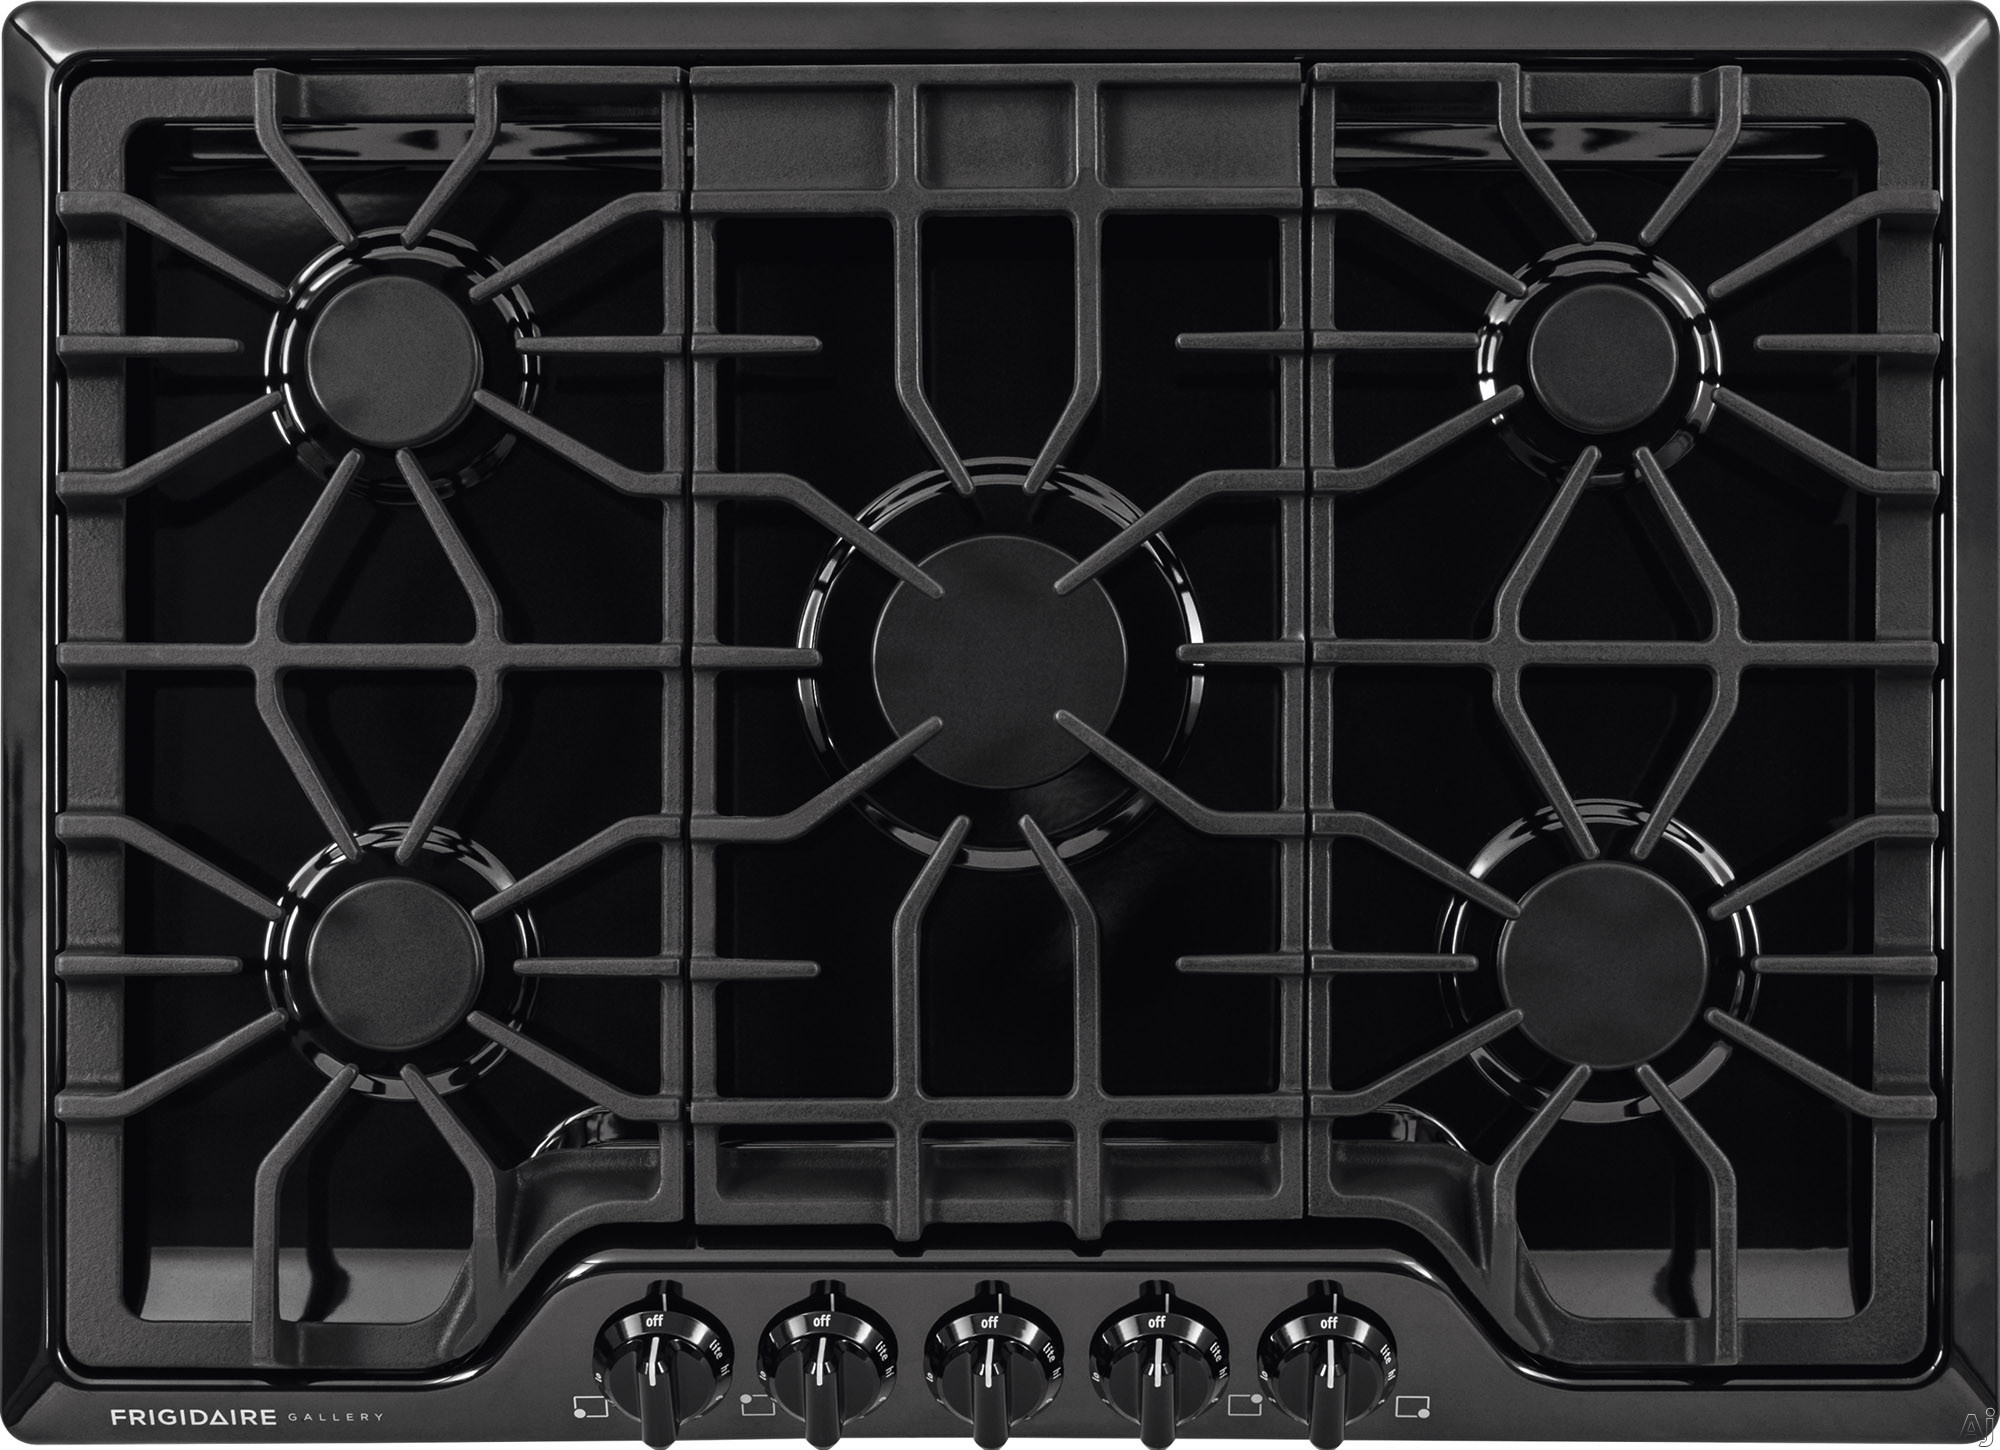 Frigidaire Gallery Series FGGC3047QB 30 Inch Gas Cooktop with LP Conversion Option, Seamless Recessed Burners, SpillSafe®, Angled Front Controls, Continuous Iron Grates, Low Simmer Burner and ADA Compliant FGGC3047QB